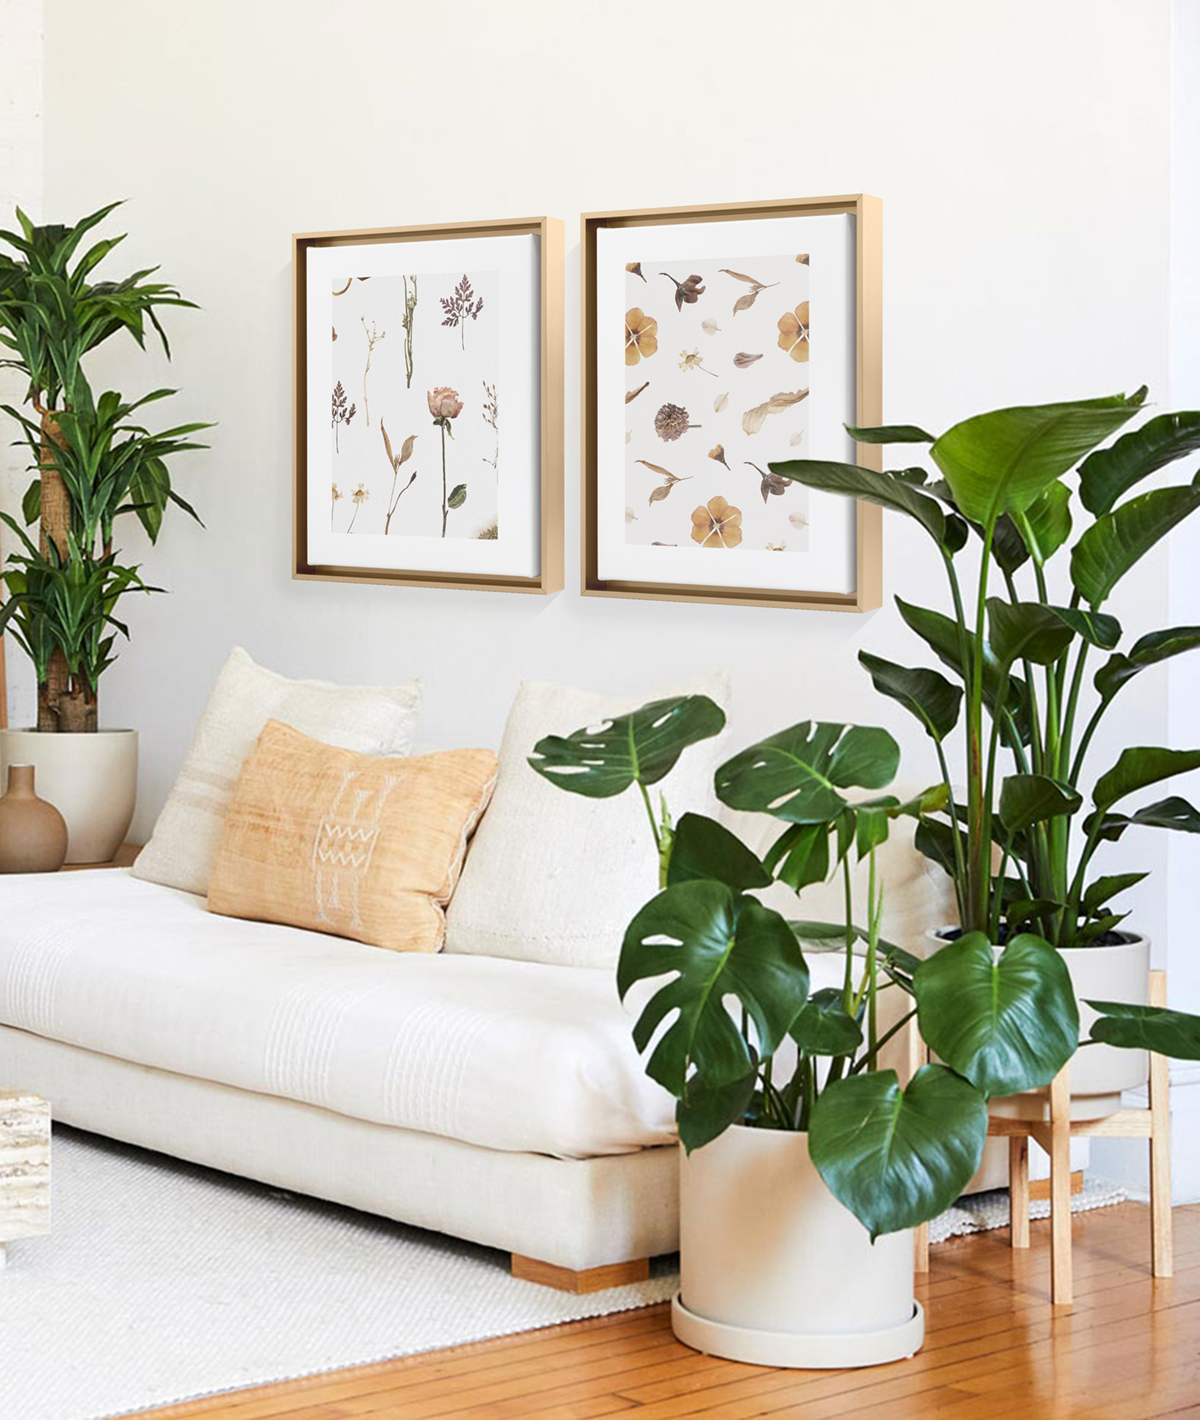 Framed Canvas prints of dried botanicals hanging above couch in between Dracena and other large plants